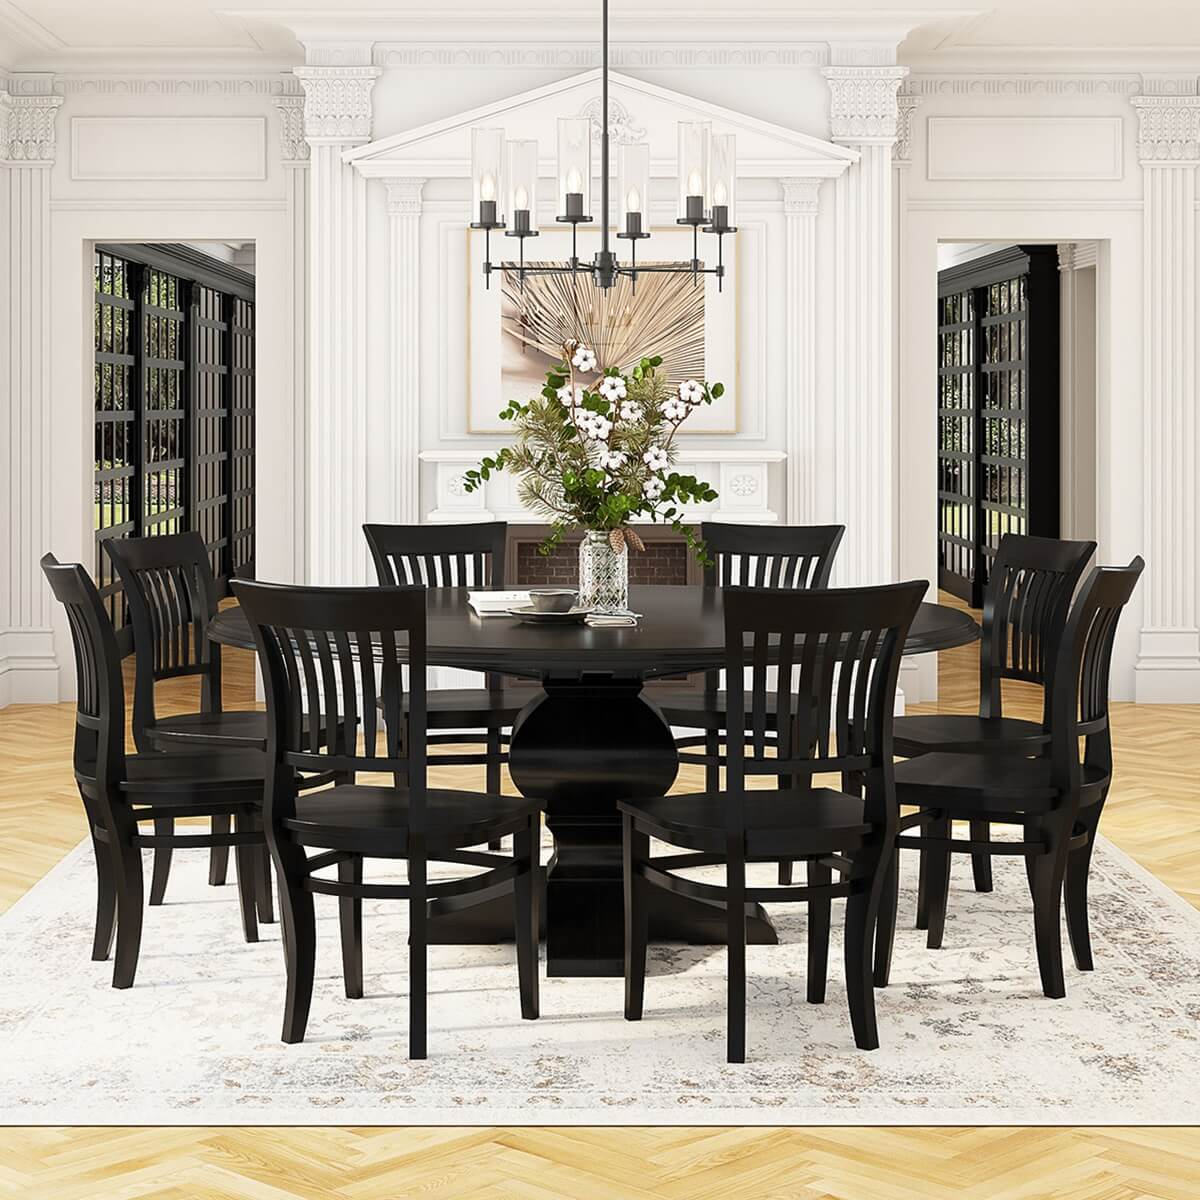 Sierra Nevada Large Round Rustic Solid Wood Dining